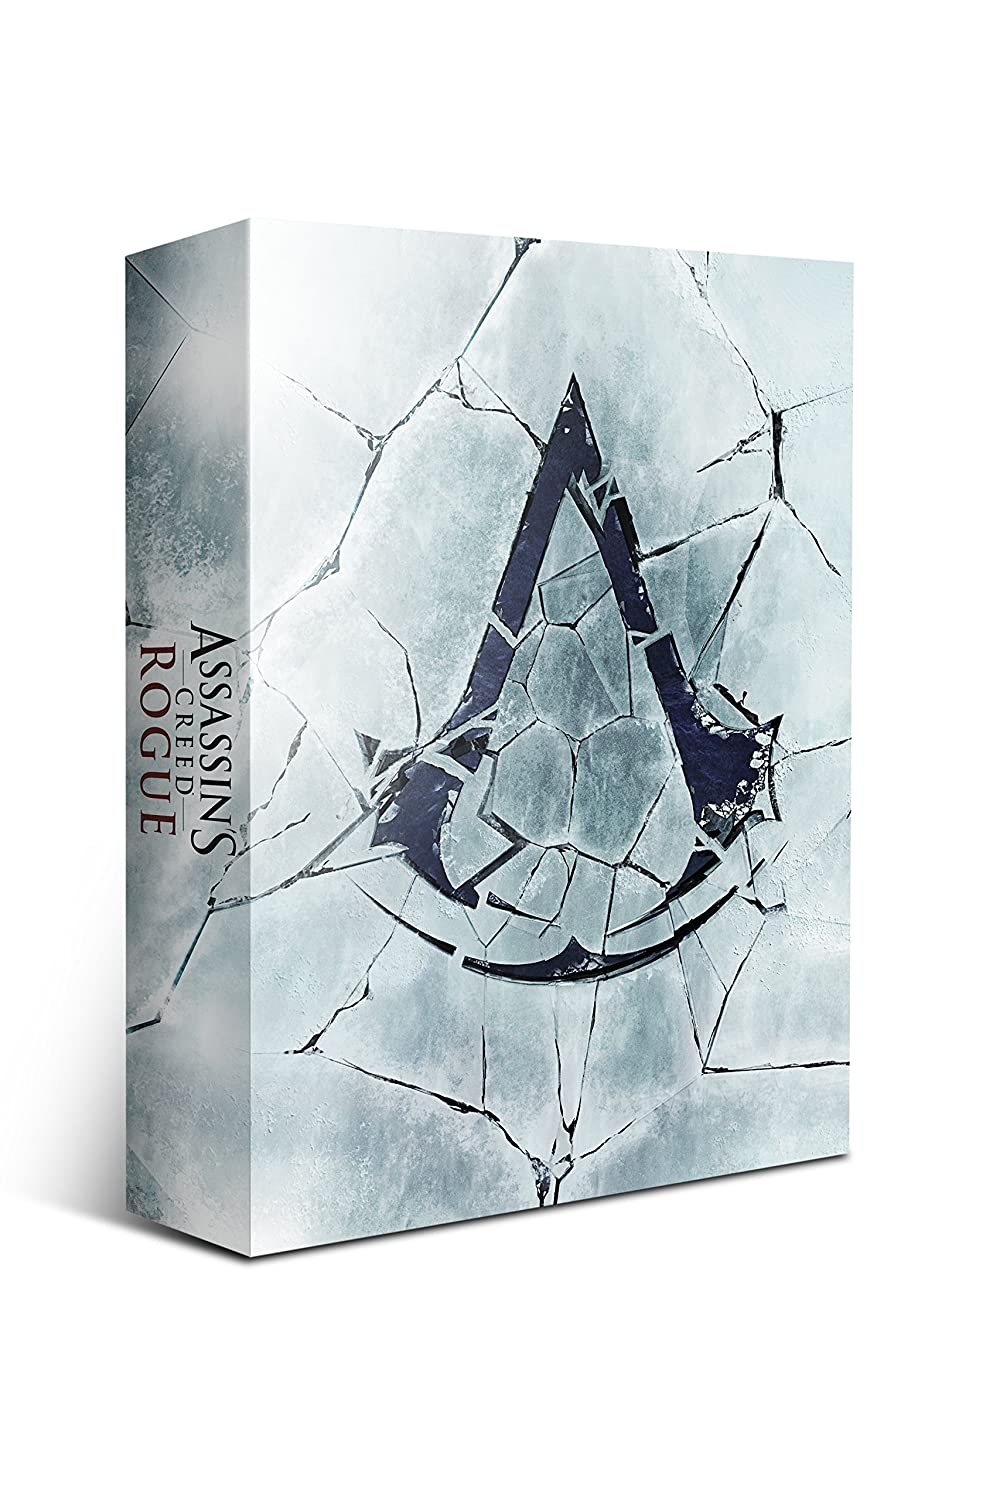 Assassins's Creed: Rogue - Collector's Edition (PS3)